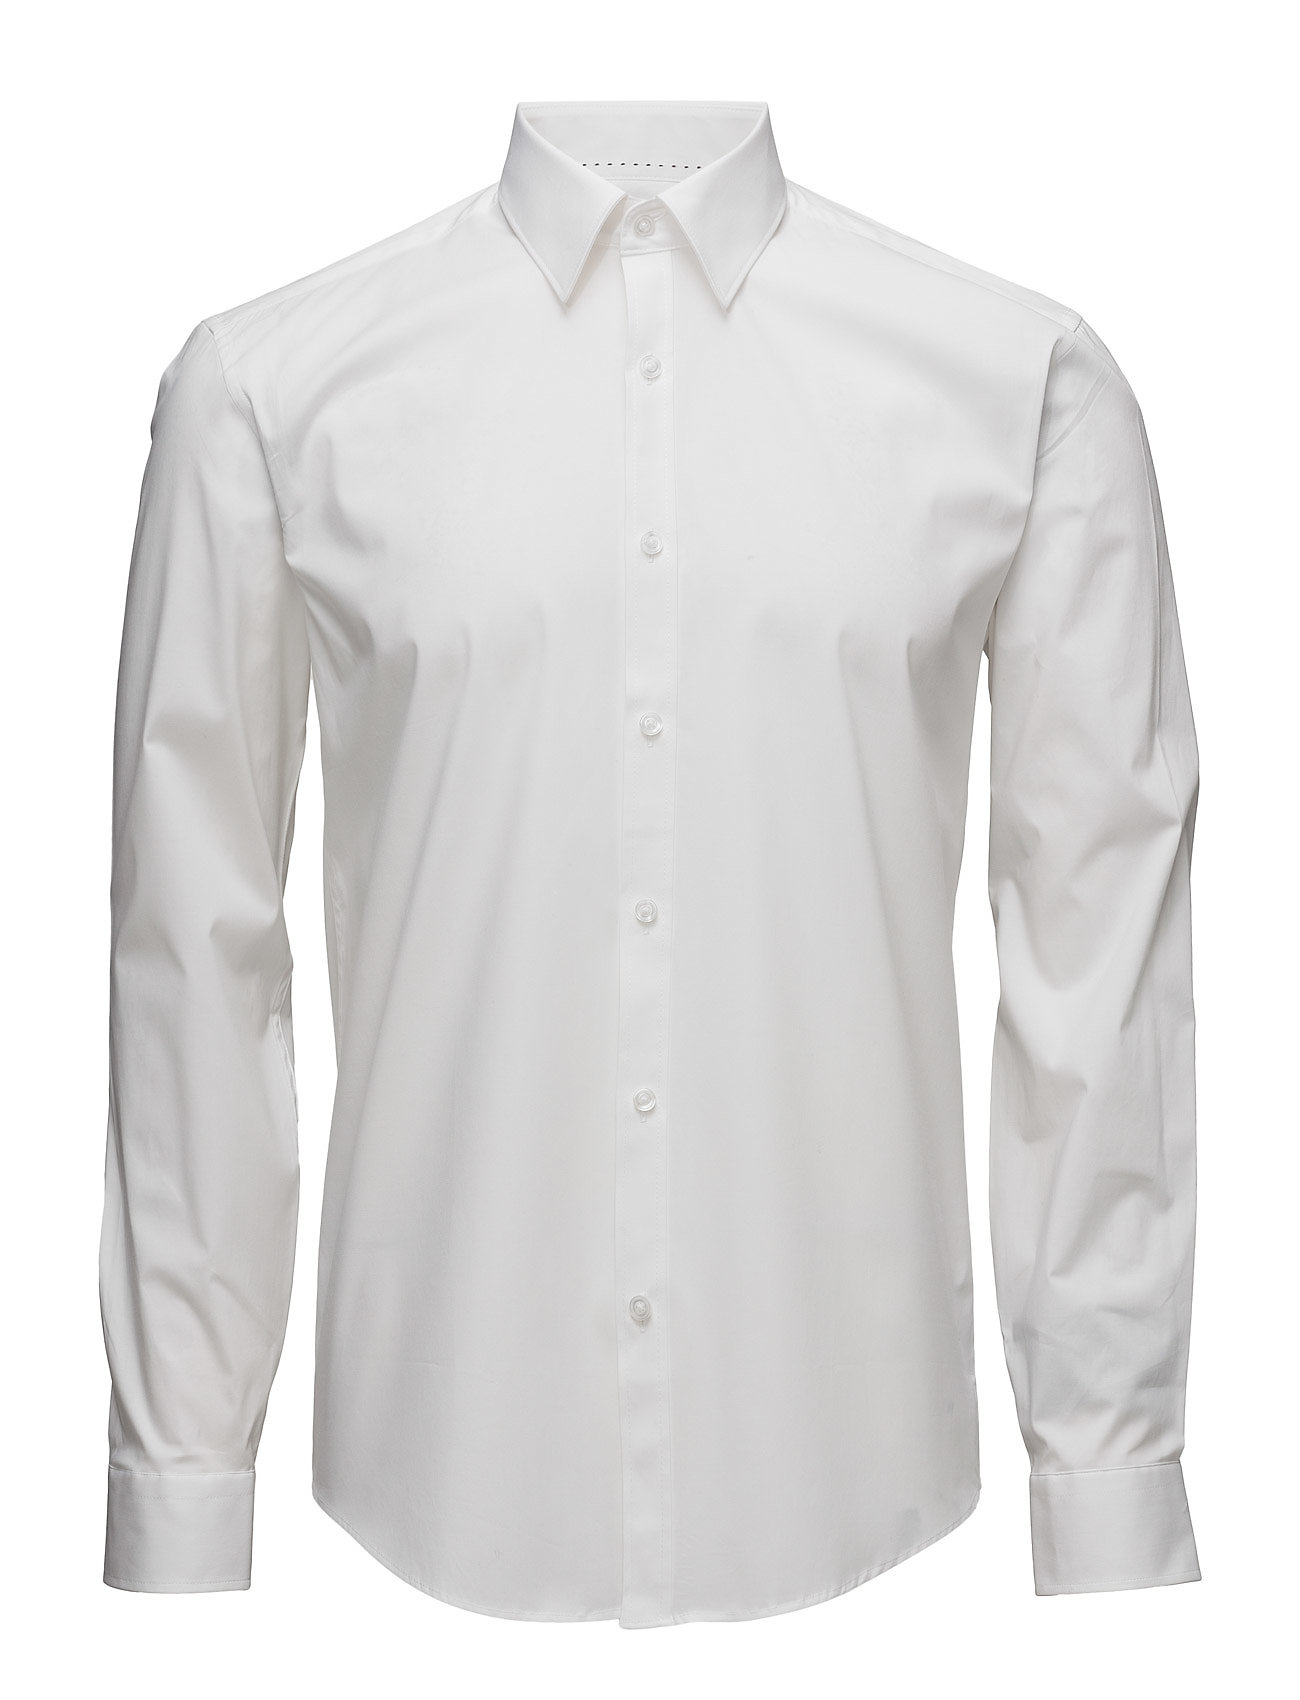 Lindbergh Men's Stretch Shirt L/S - WHITE